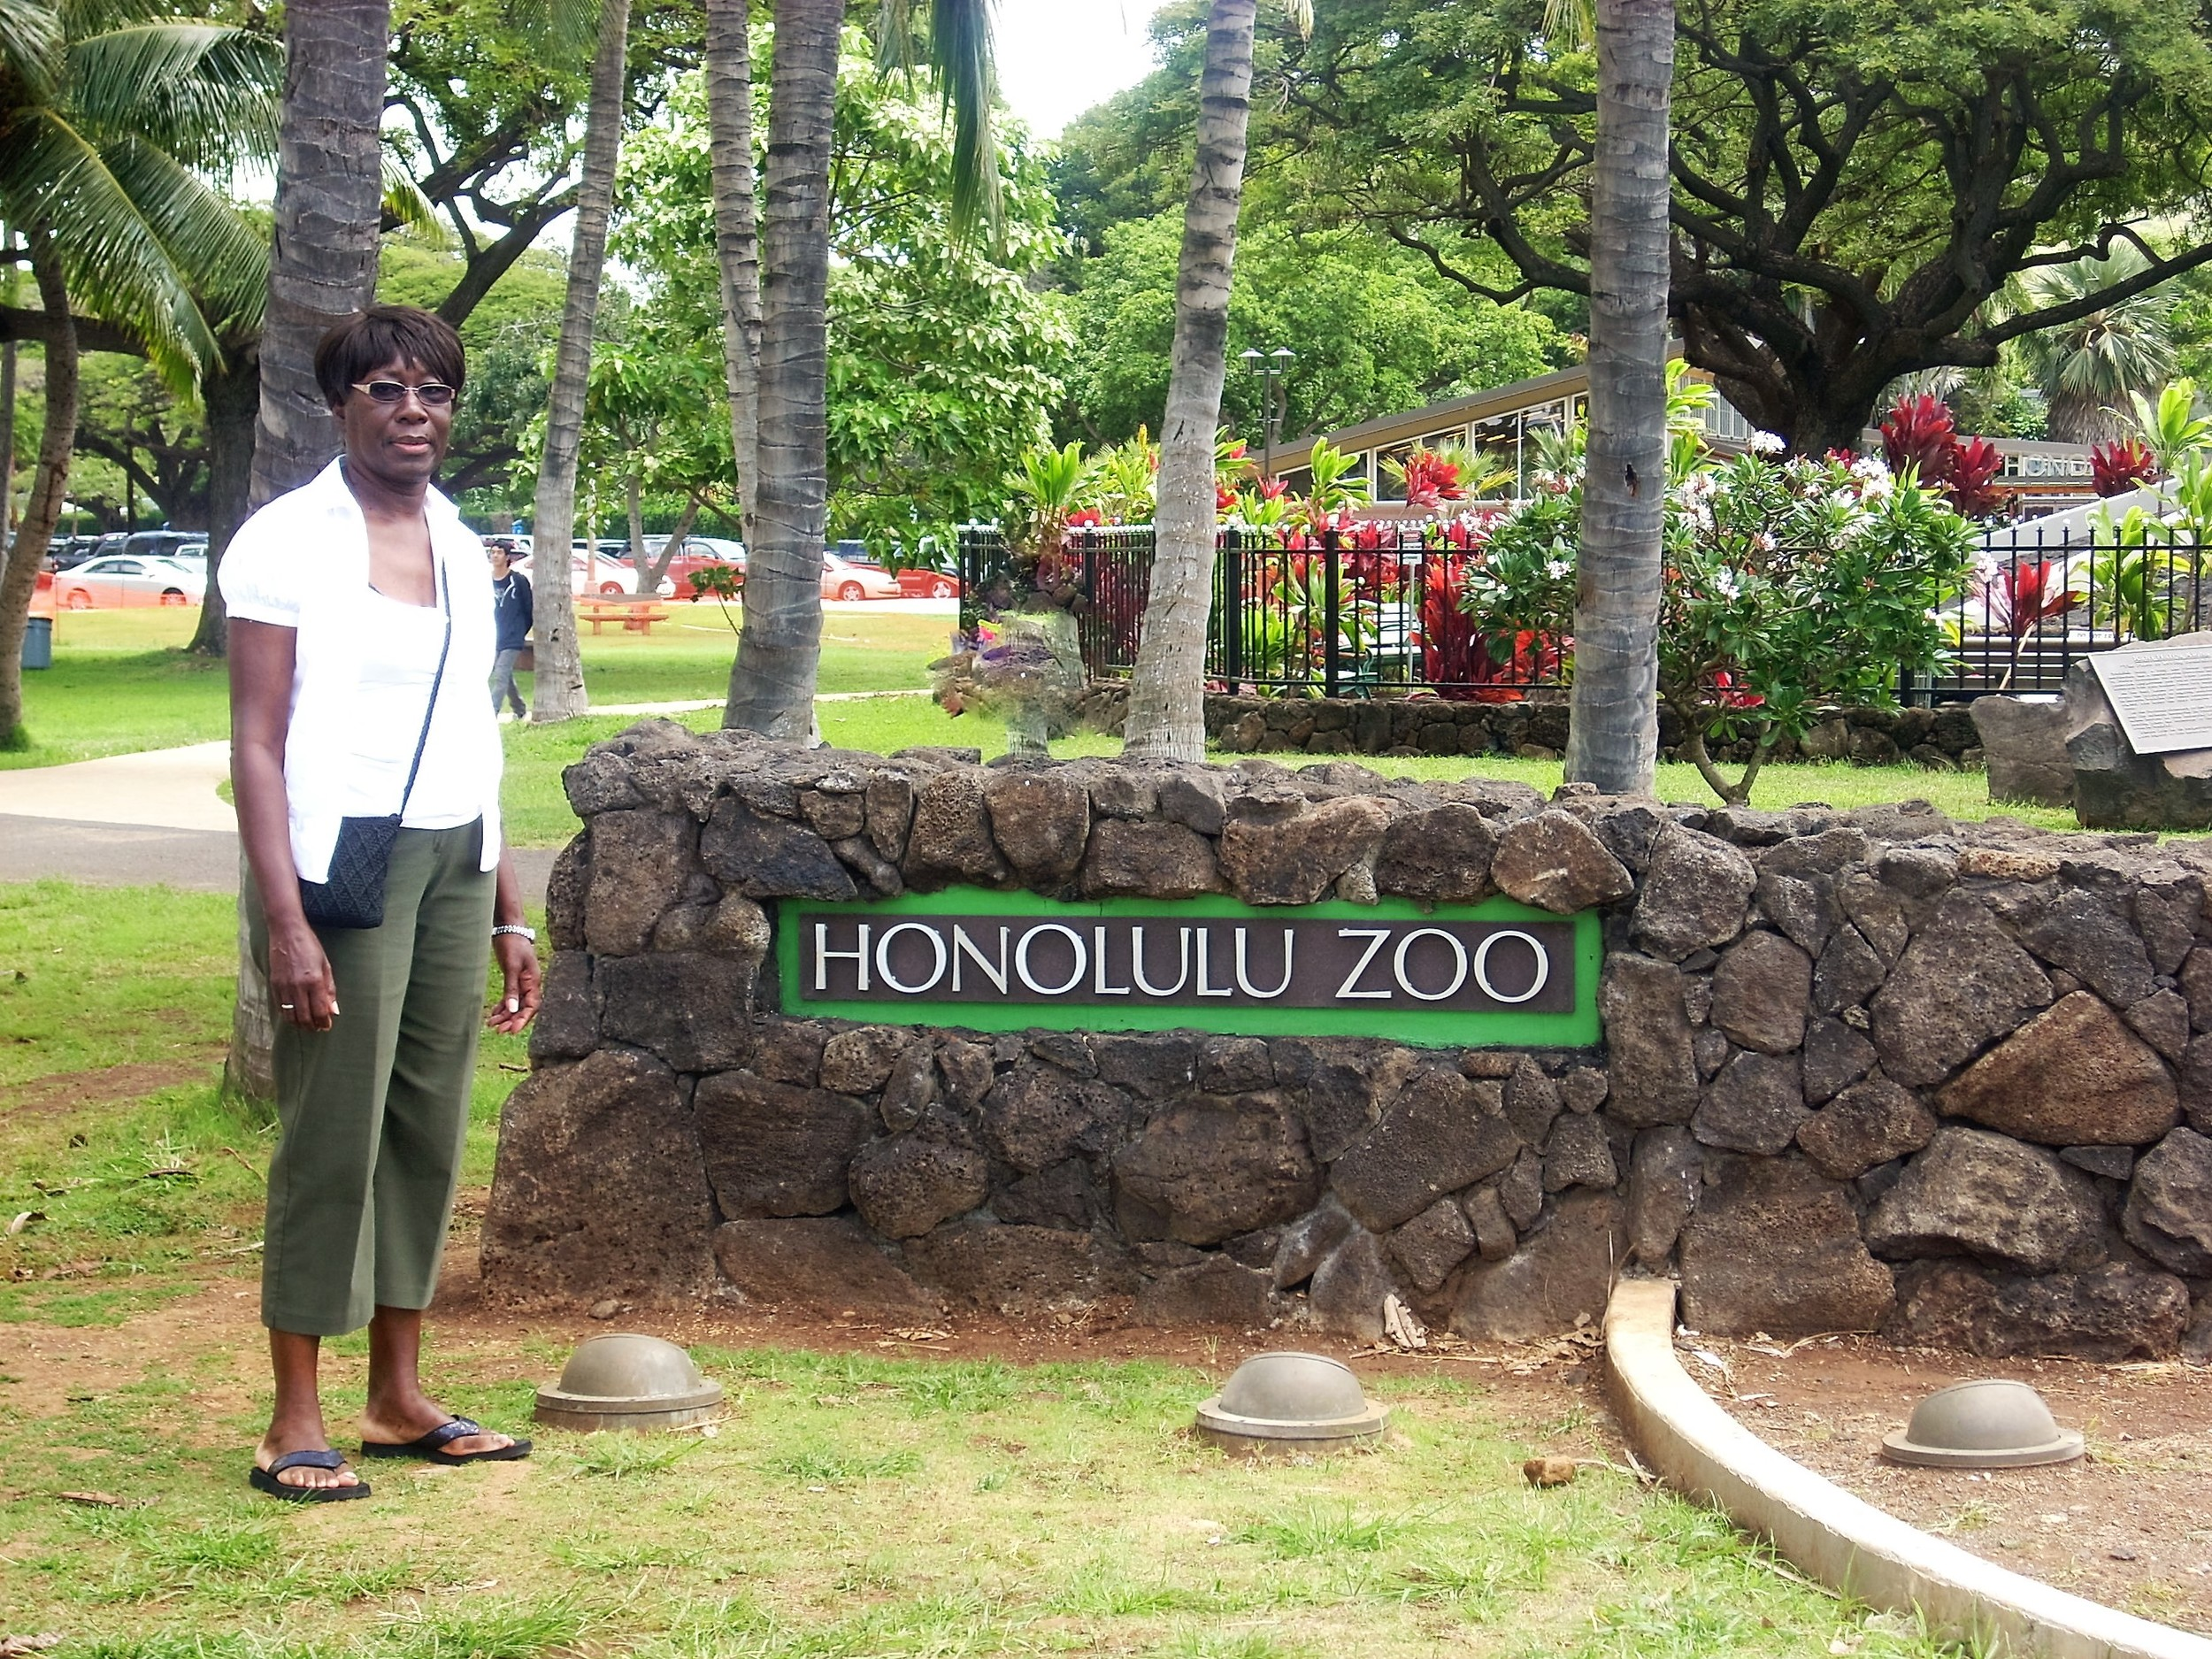 Ms. Joanne Charles in Hawaii